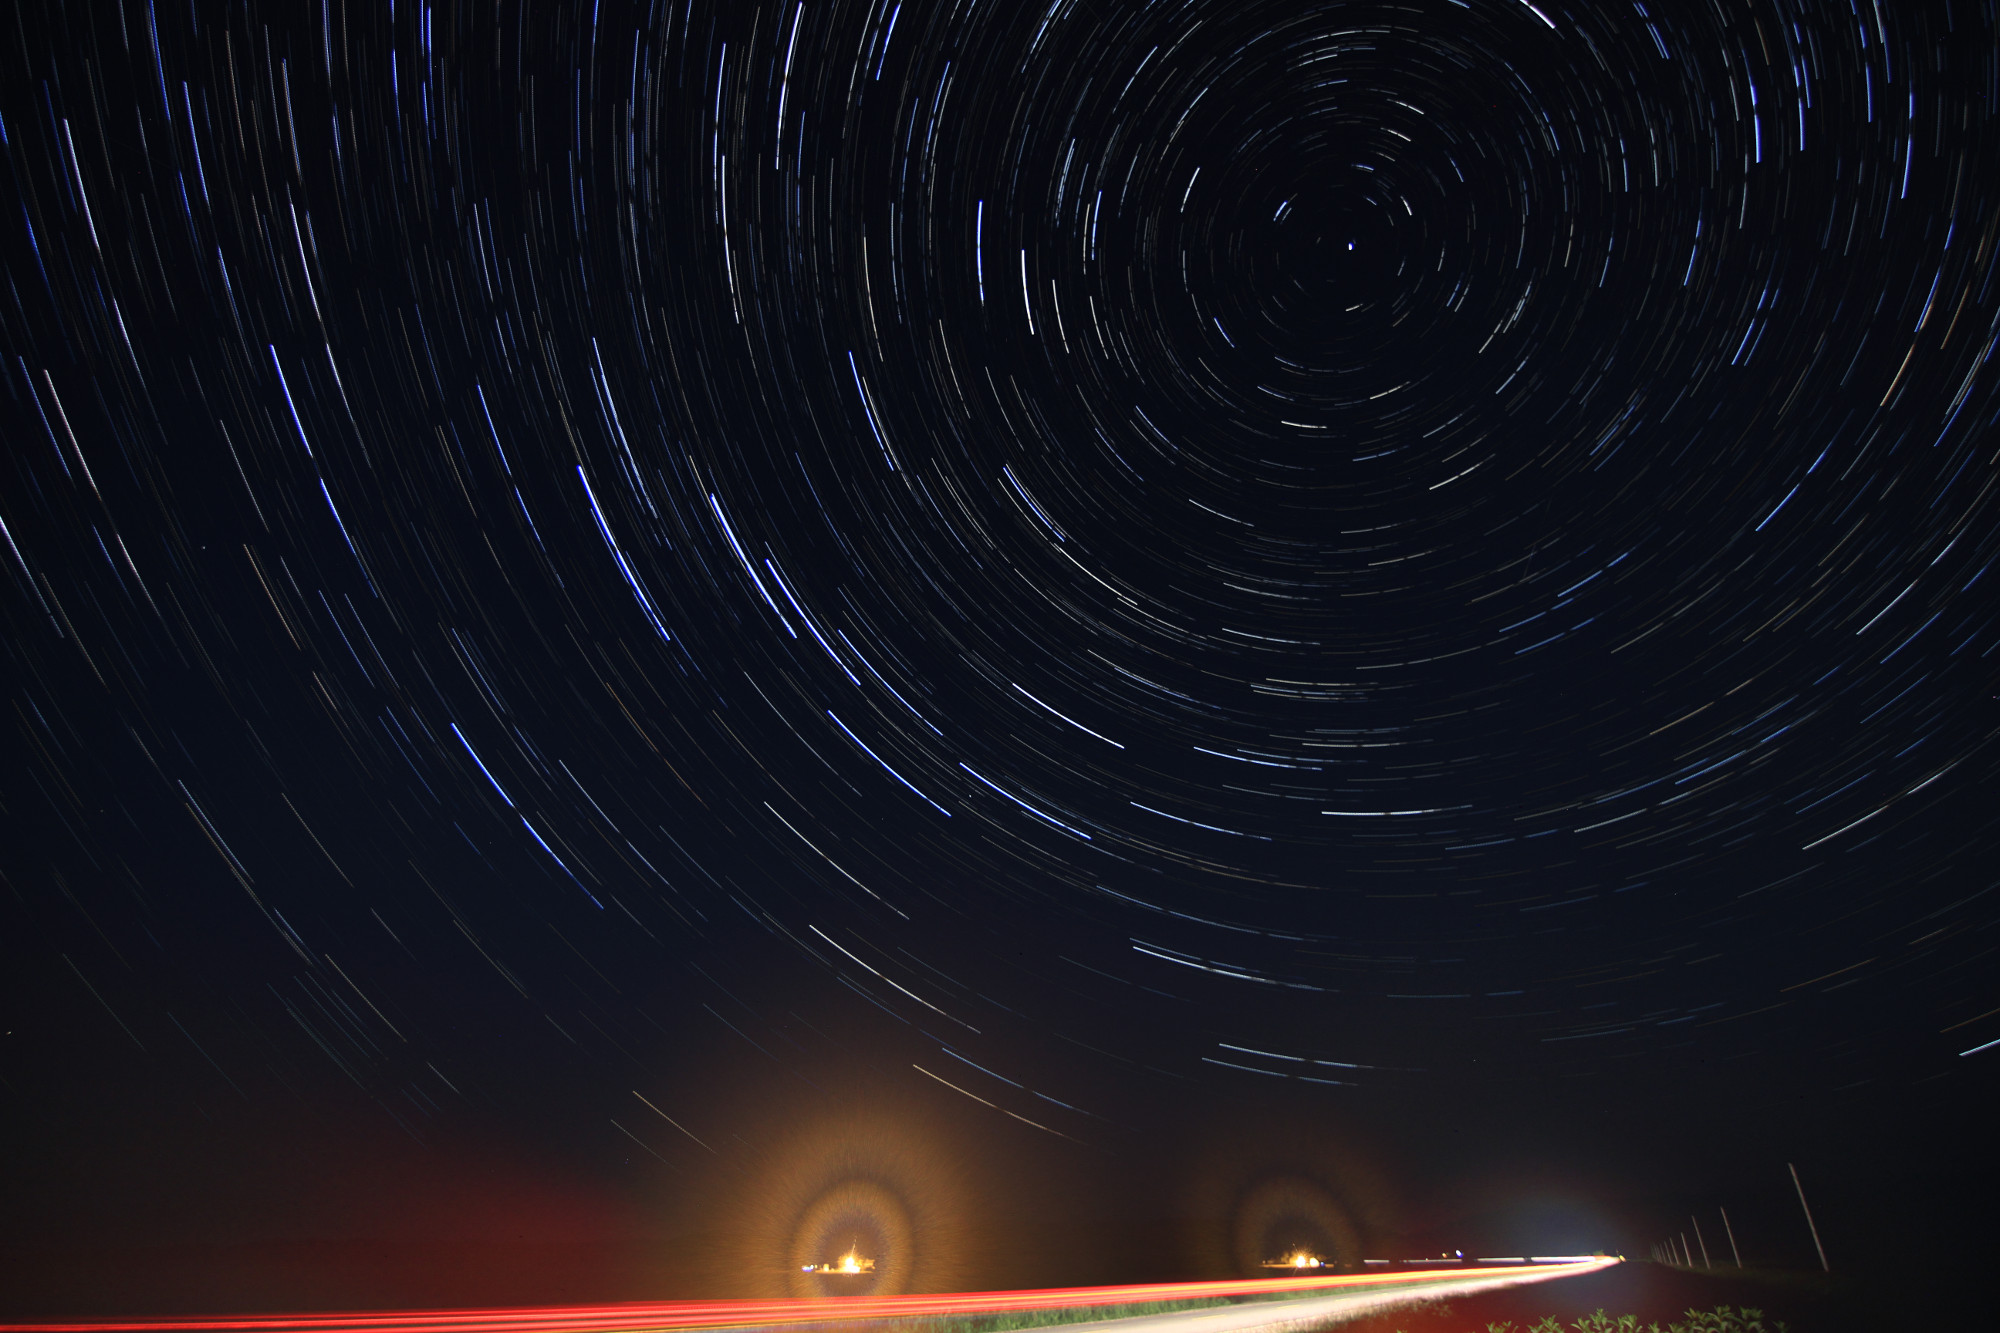 Star trails -- about 100 images, 30 seconds each